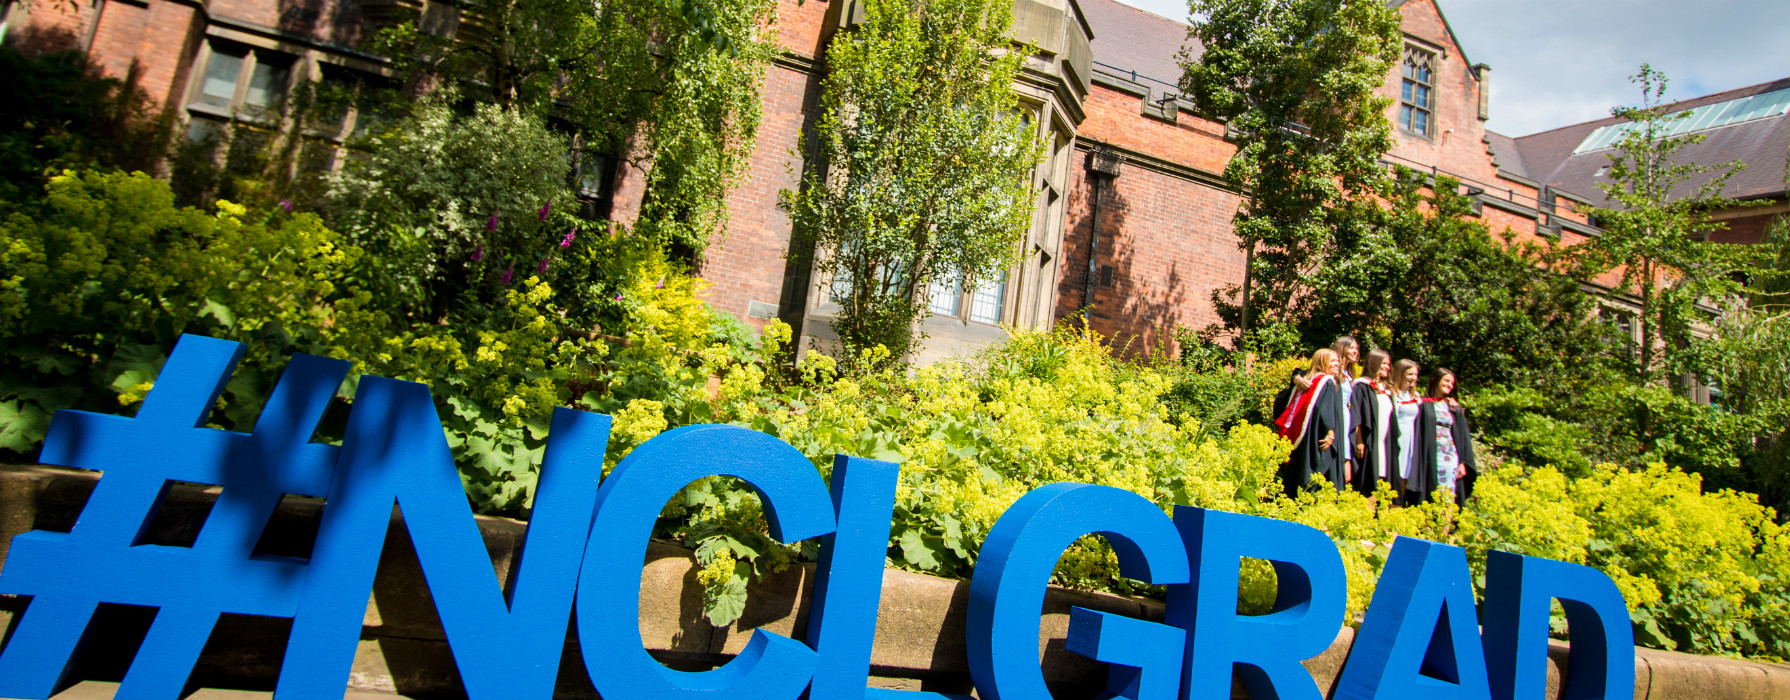 Giant foam letters spell out '#nclgrad' outside of the Percy Building.